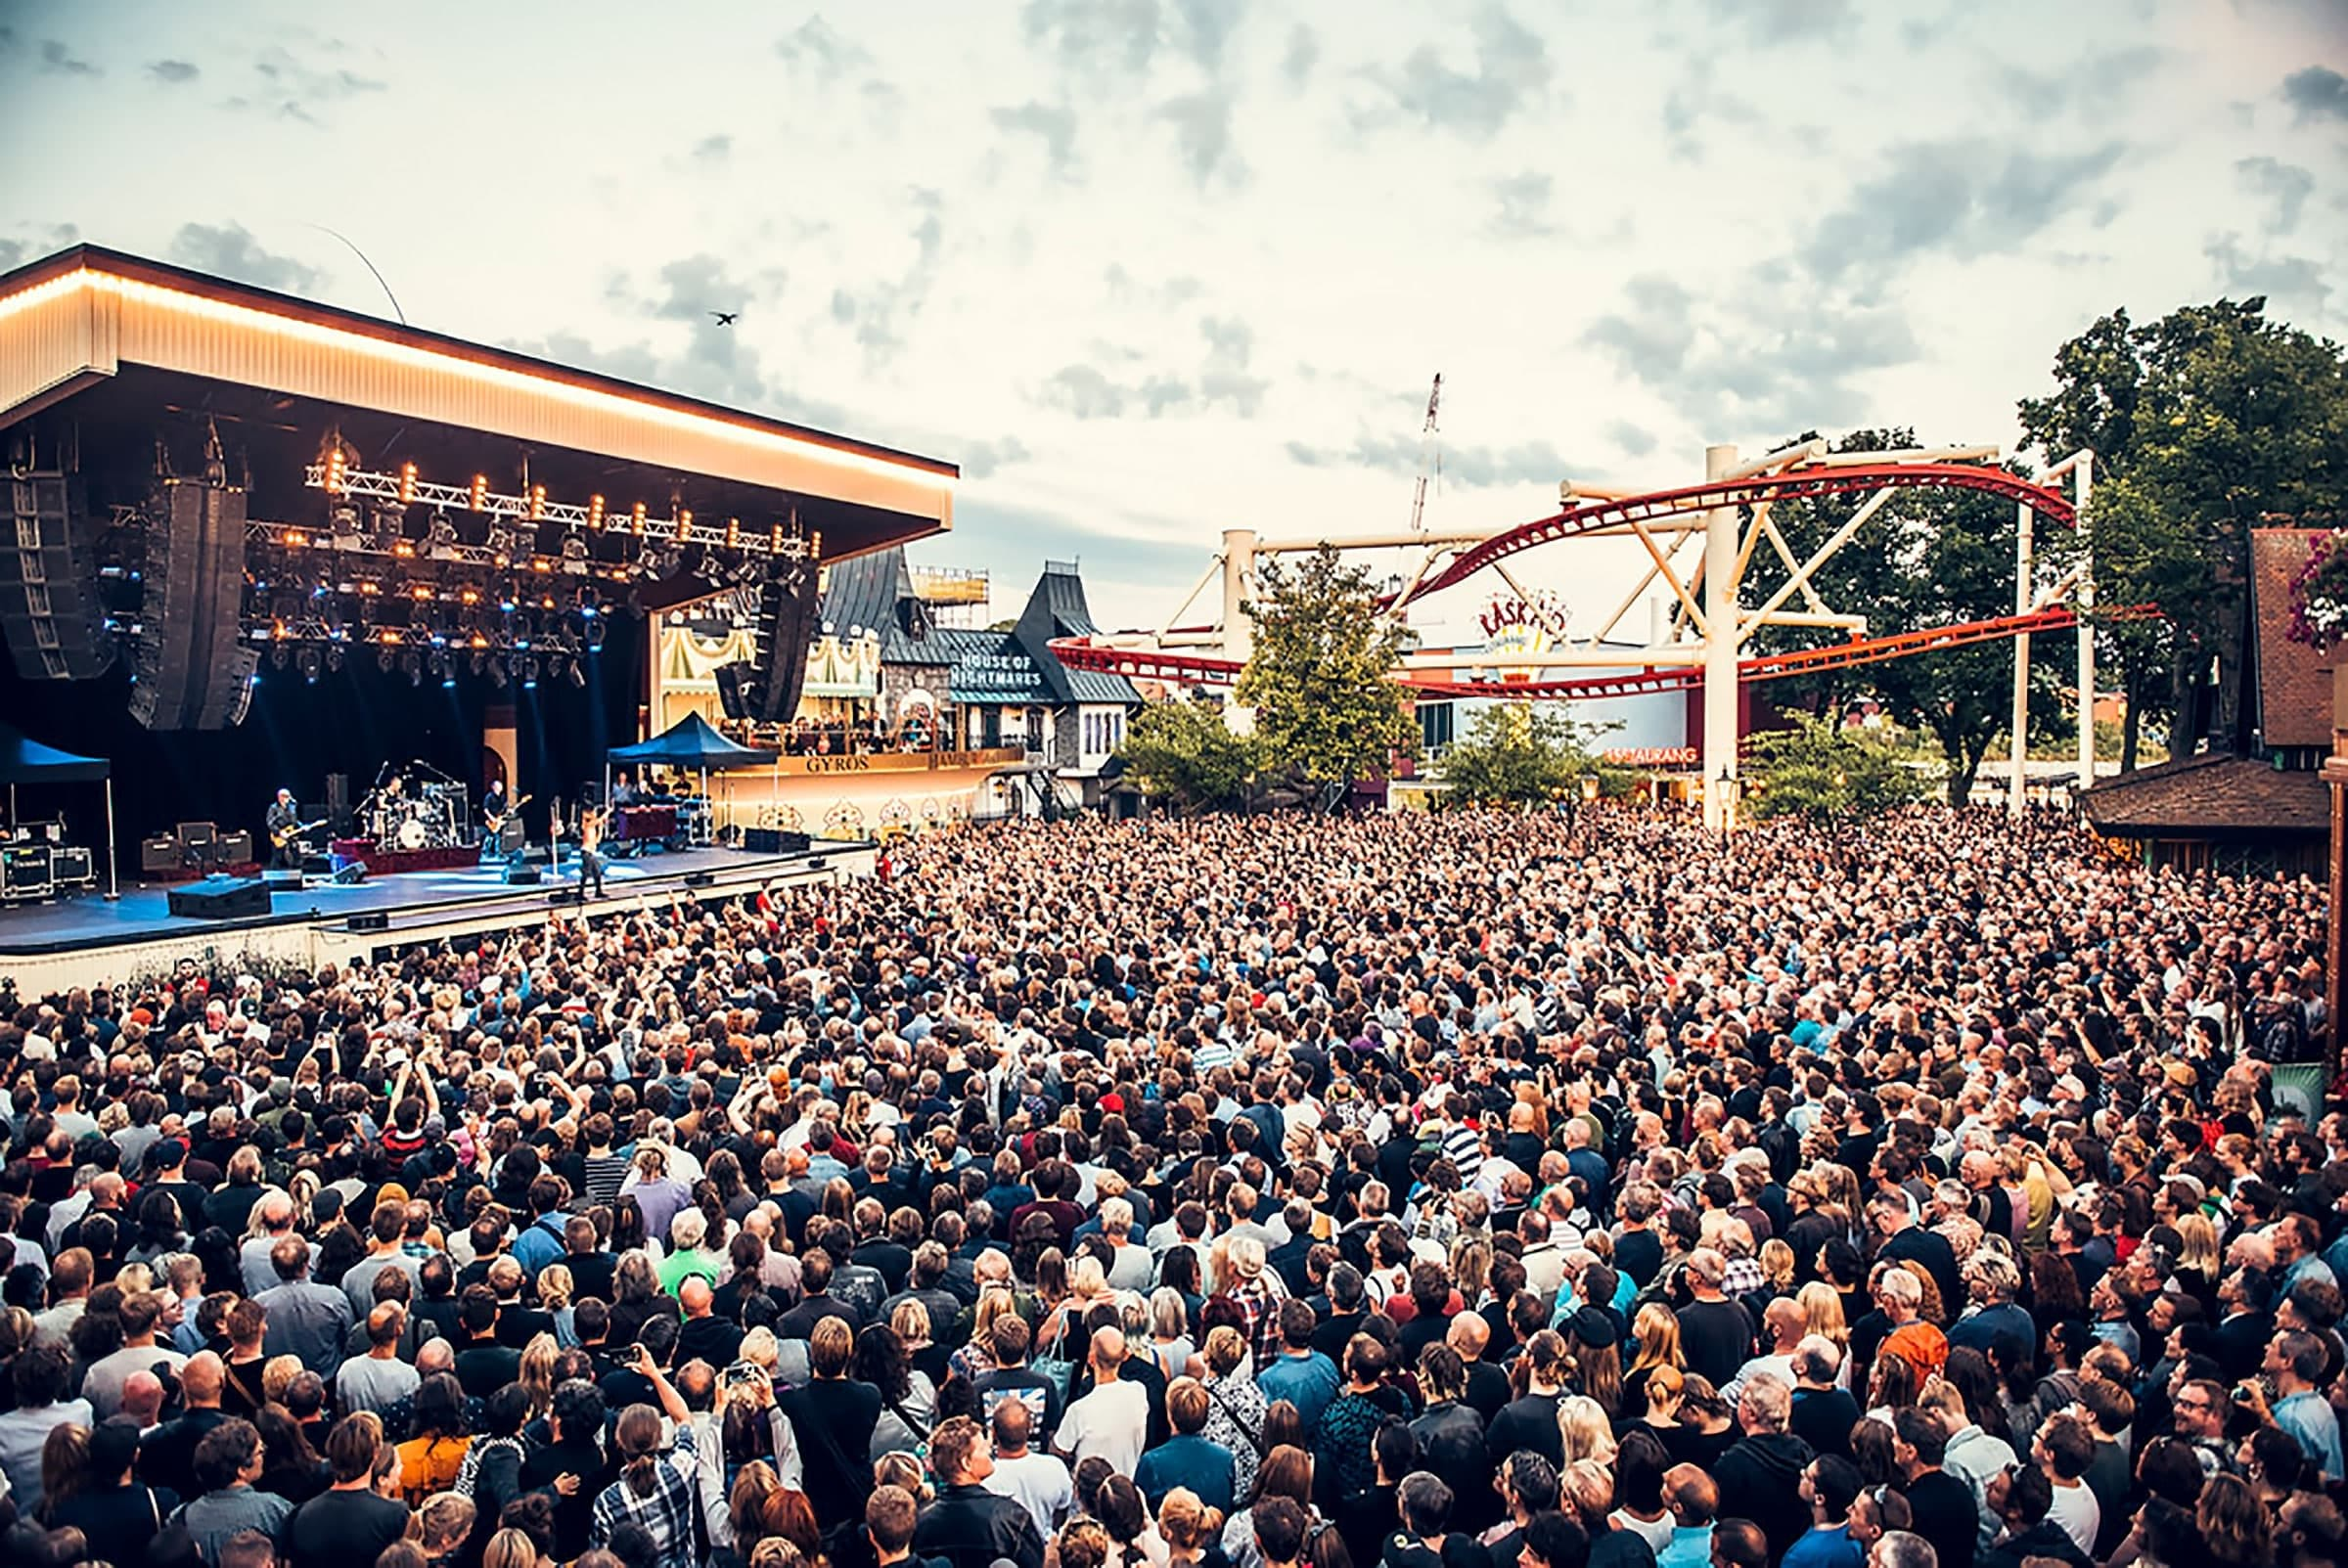 Gröna Lund concerts 2019: this year's artist line-up